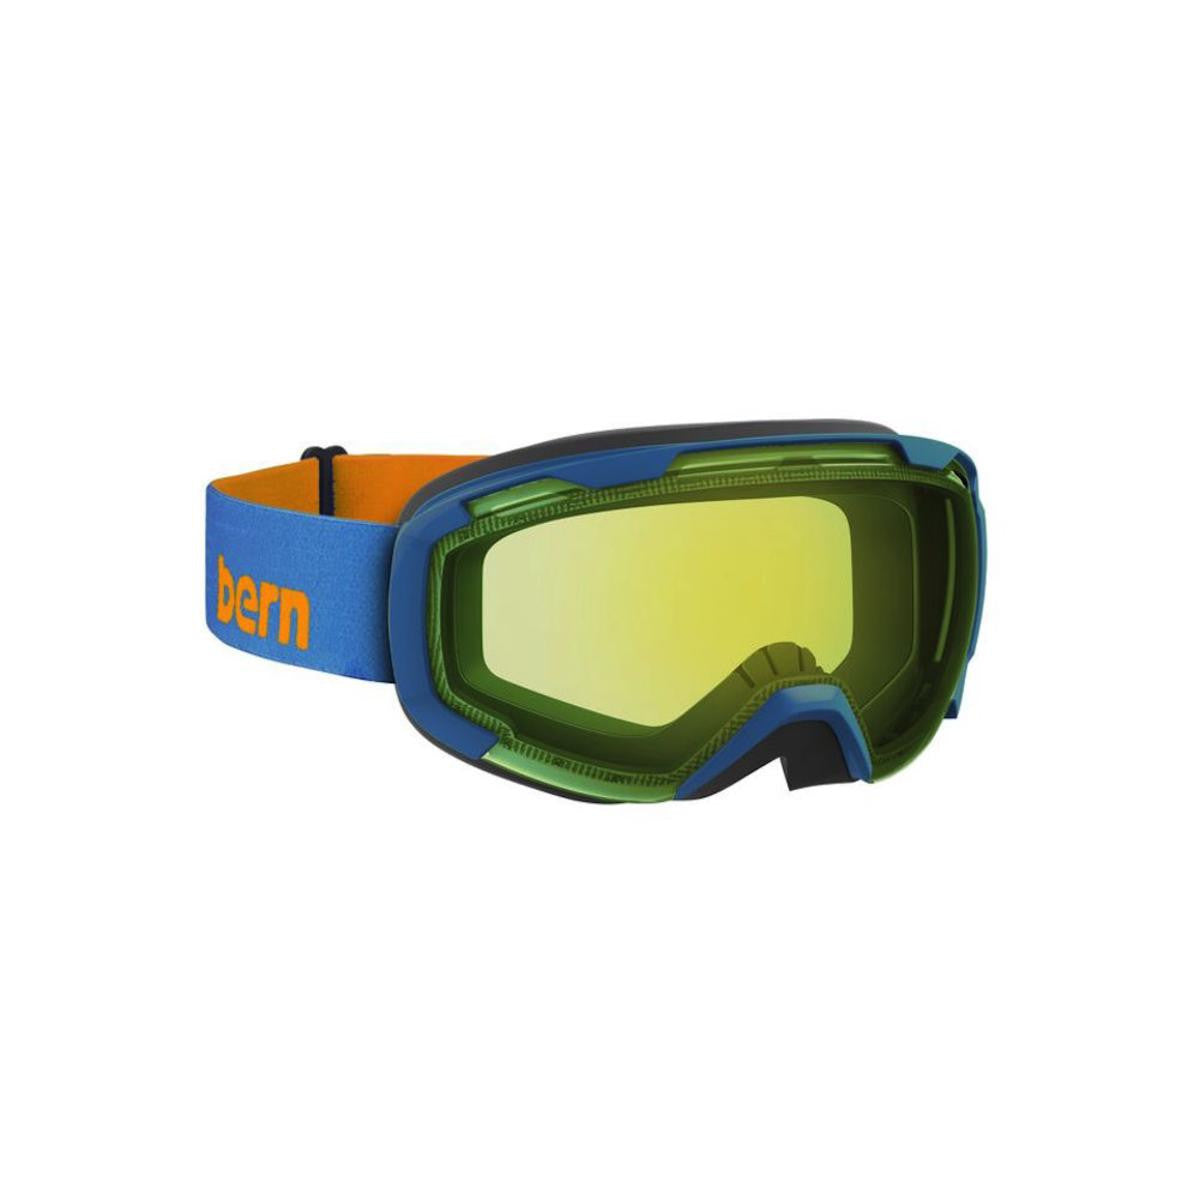 Bern Sawyer Goggles Multiple Colors New